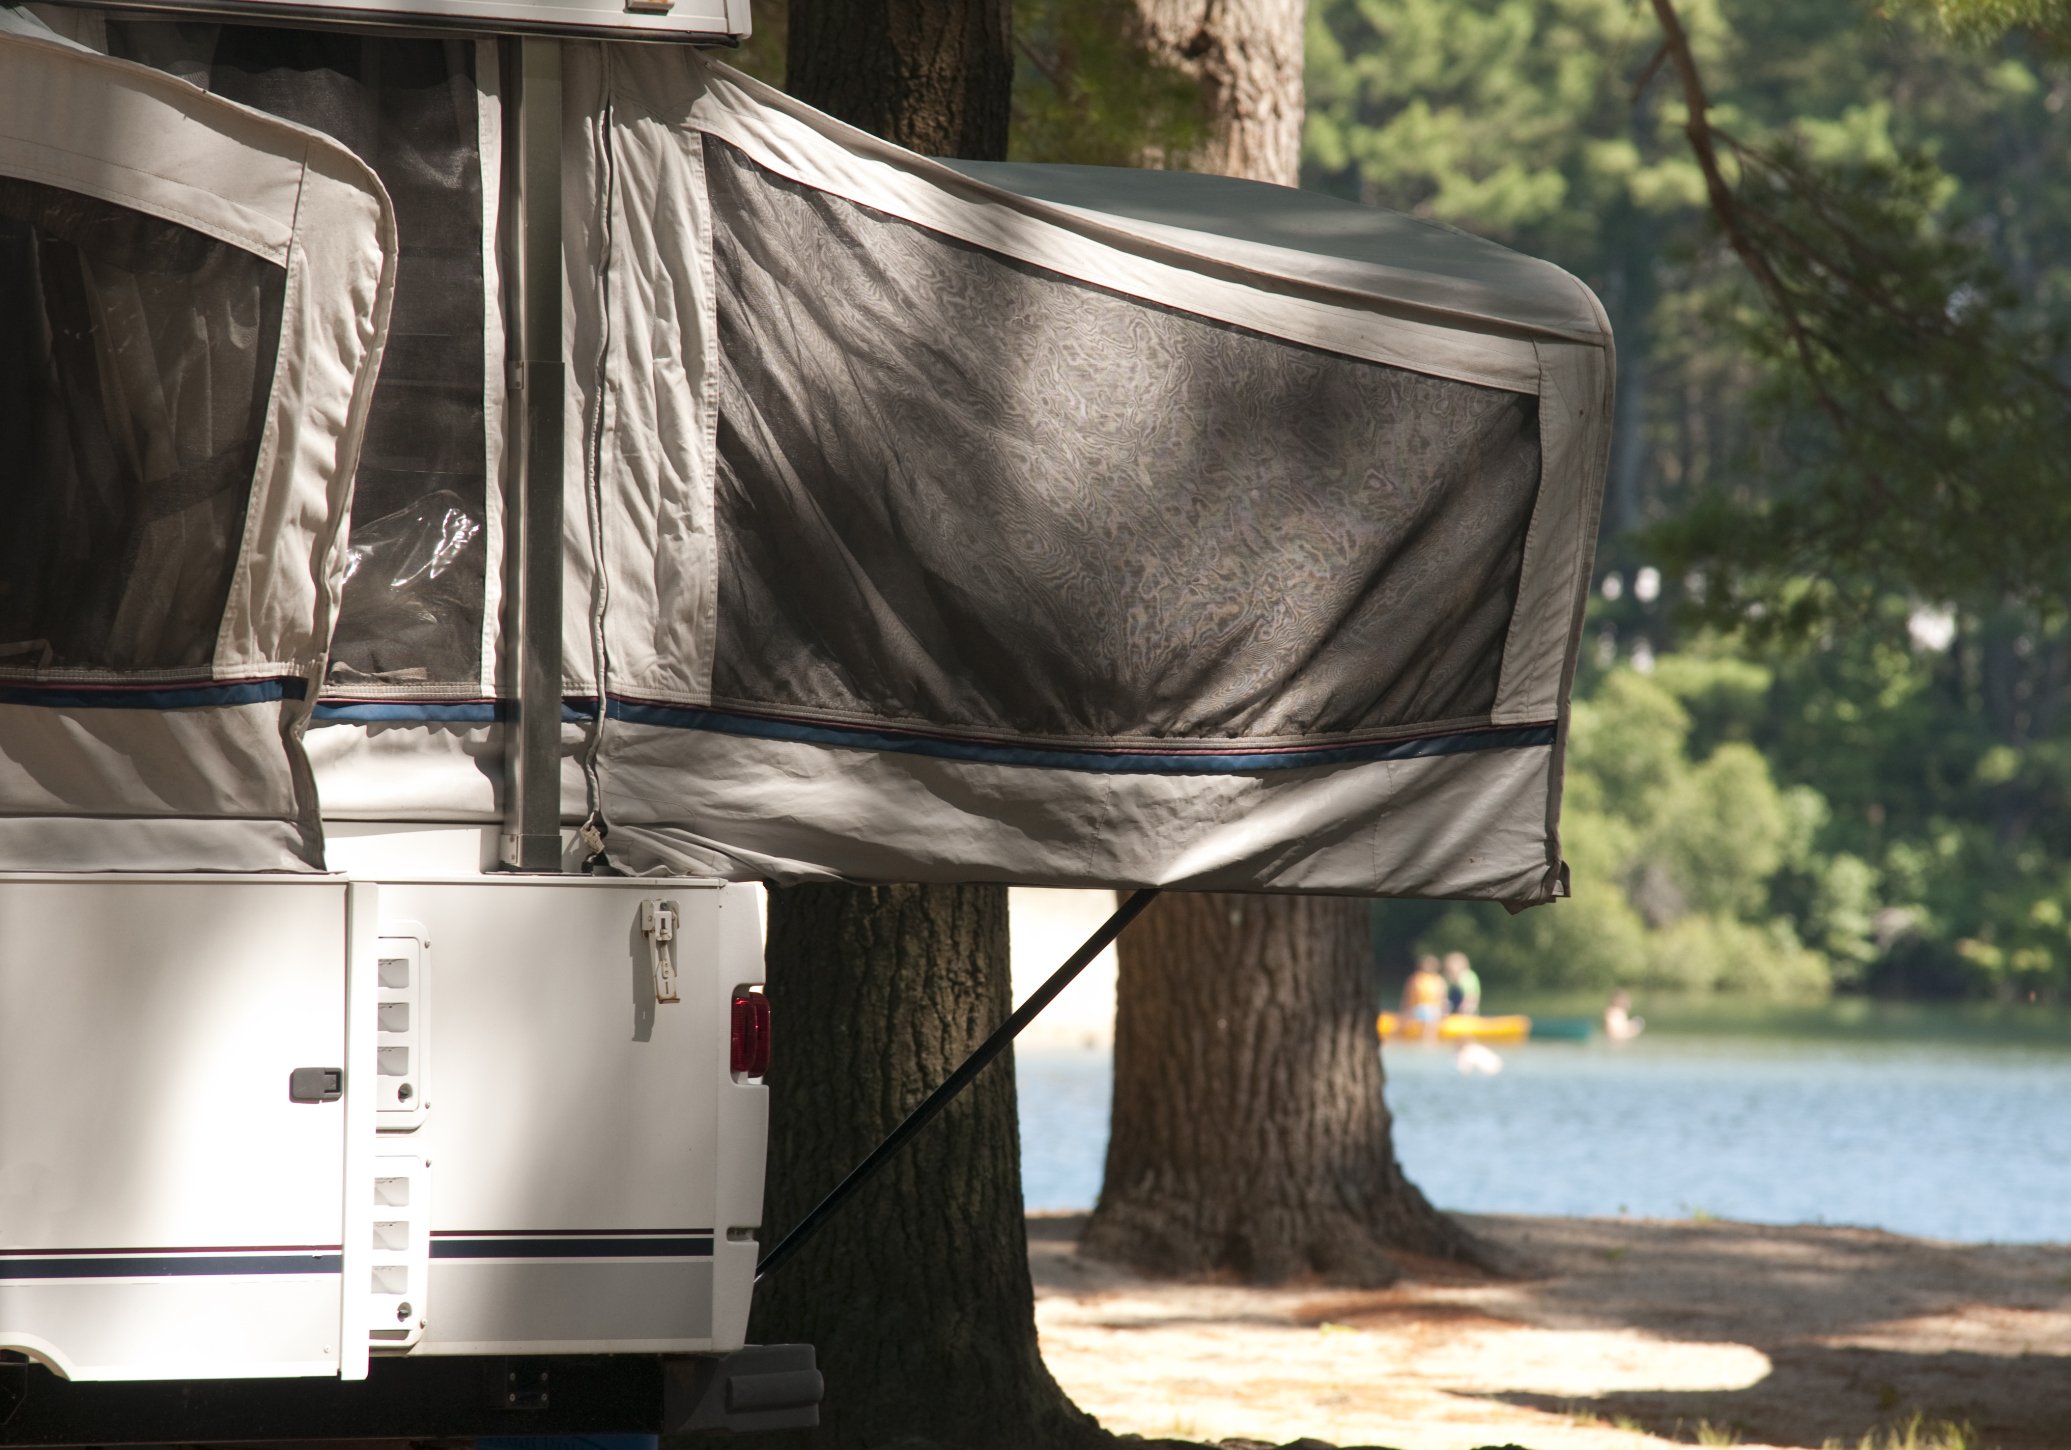 Alternative To Mini Blinds In Campers